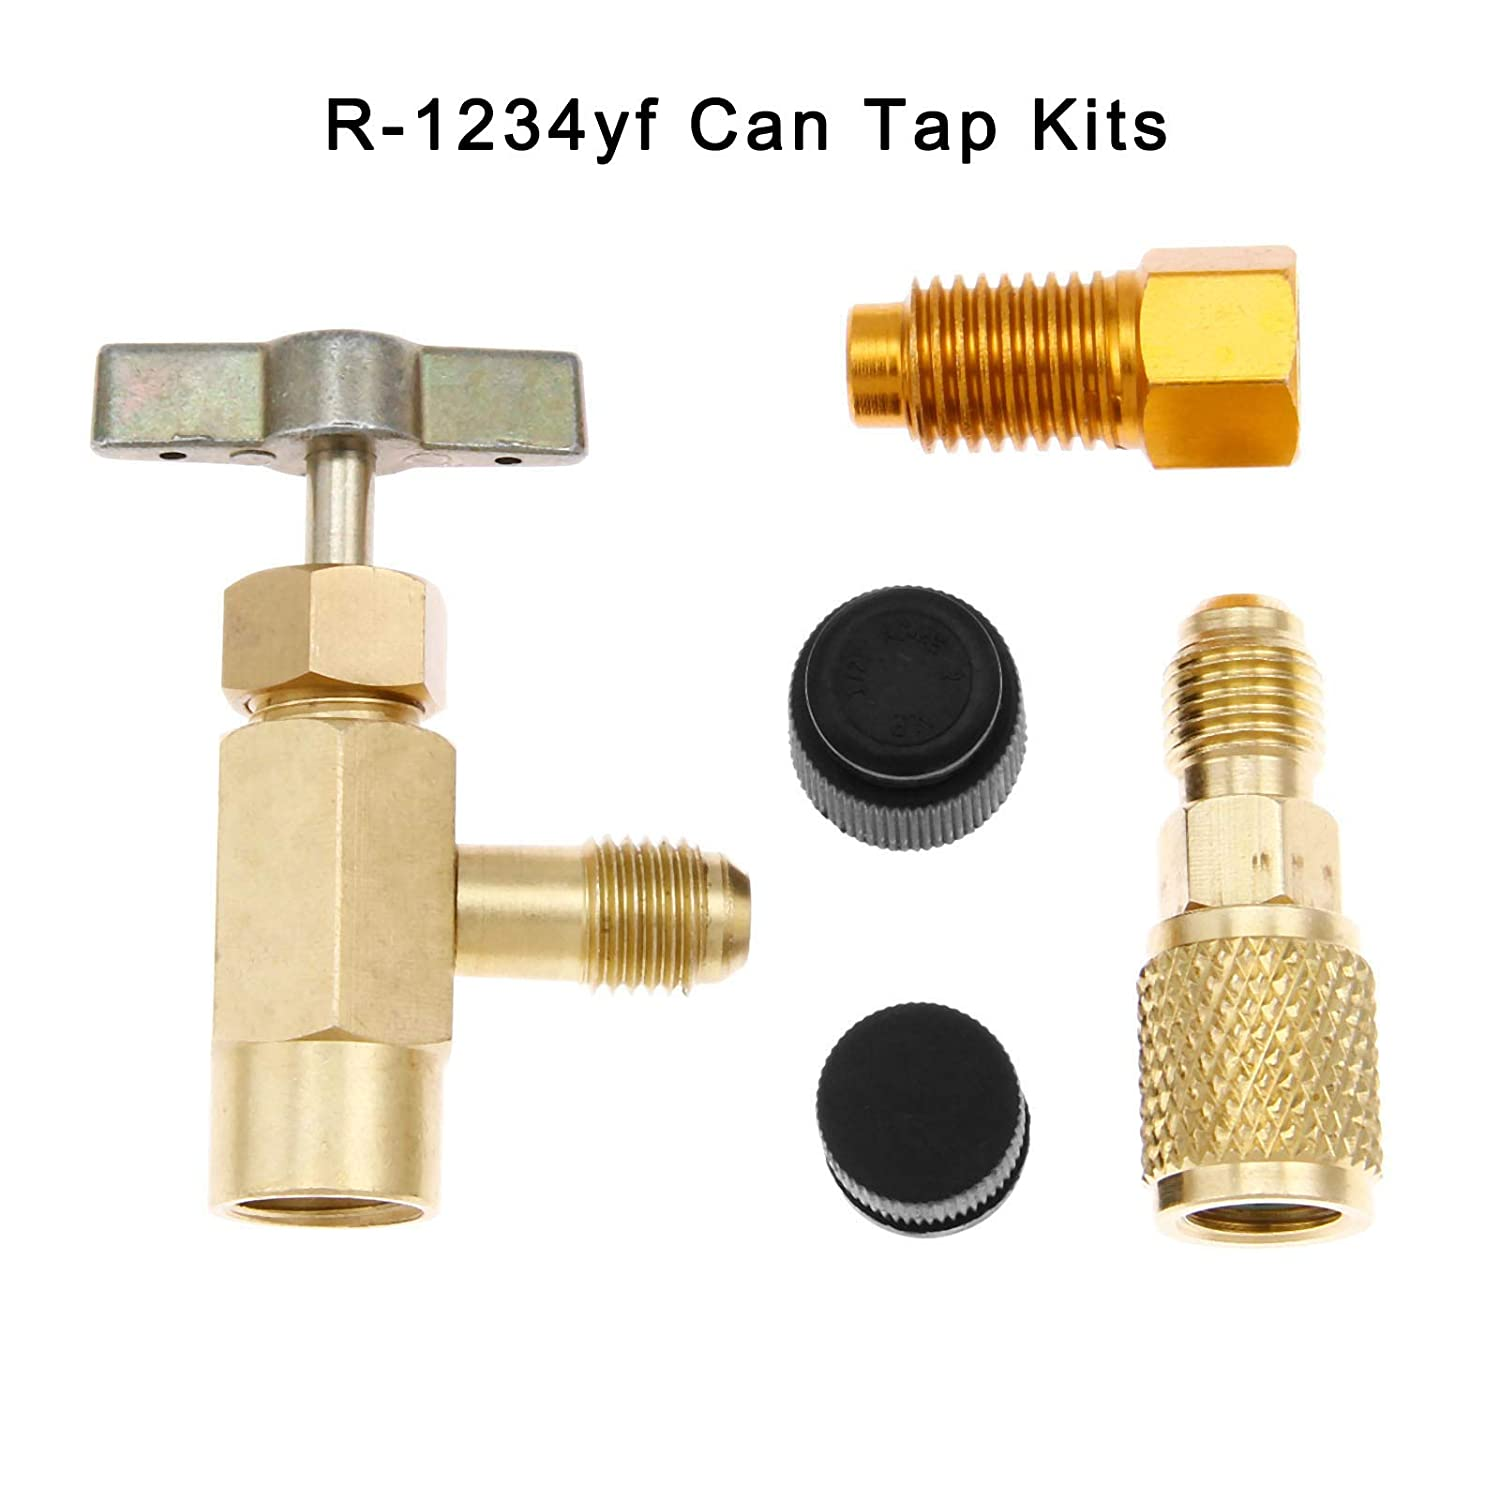 gohantee 5Pcs Brass R1234yf Special Can Tap Adapter Fittings Kit for R134a R12 R22 Charging Hose 1//4 SAE 1//2 Acme LH